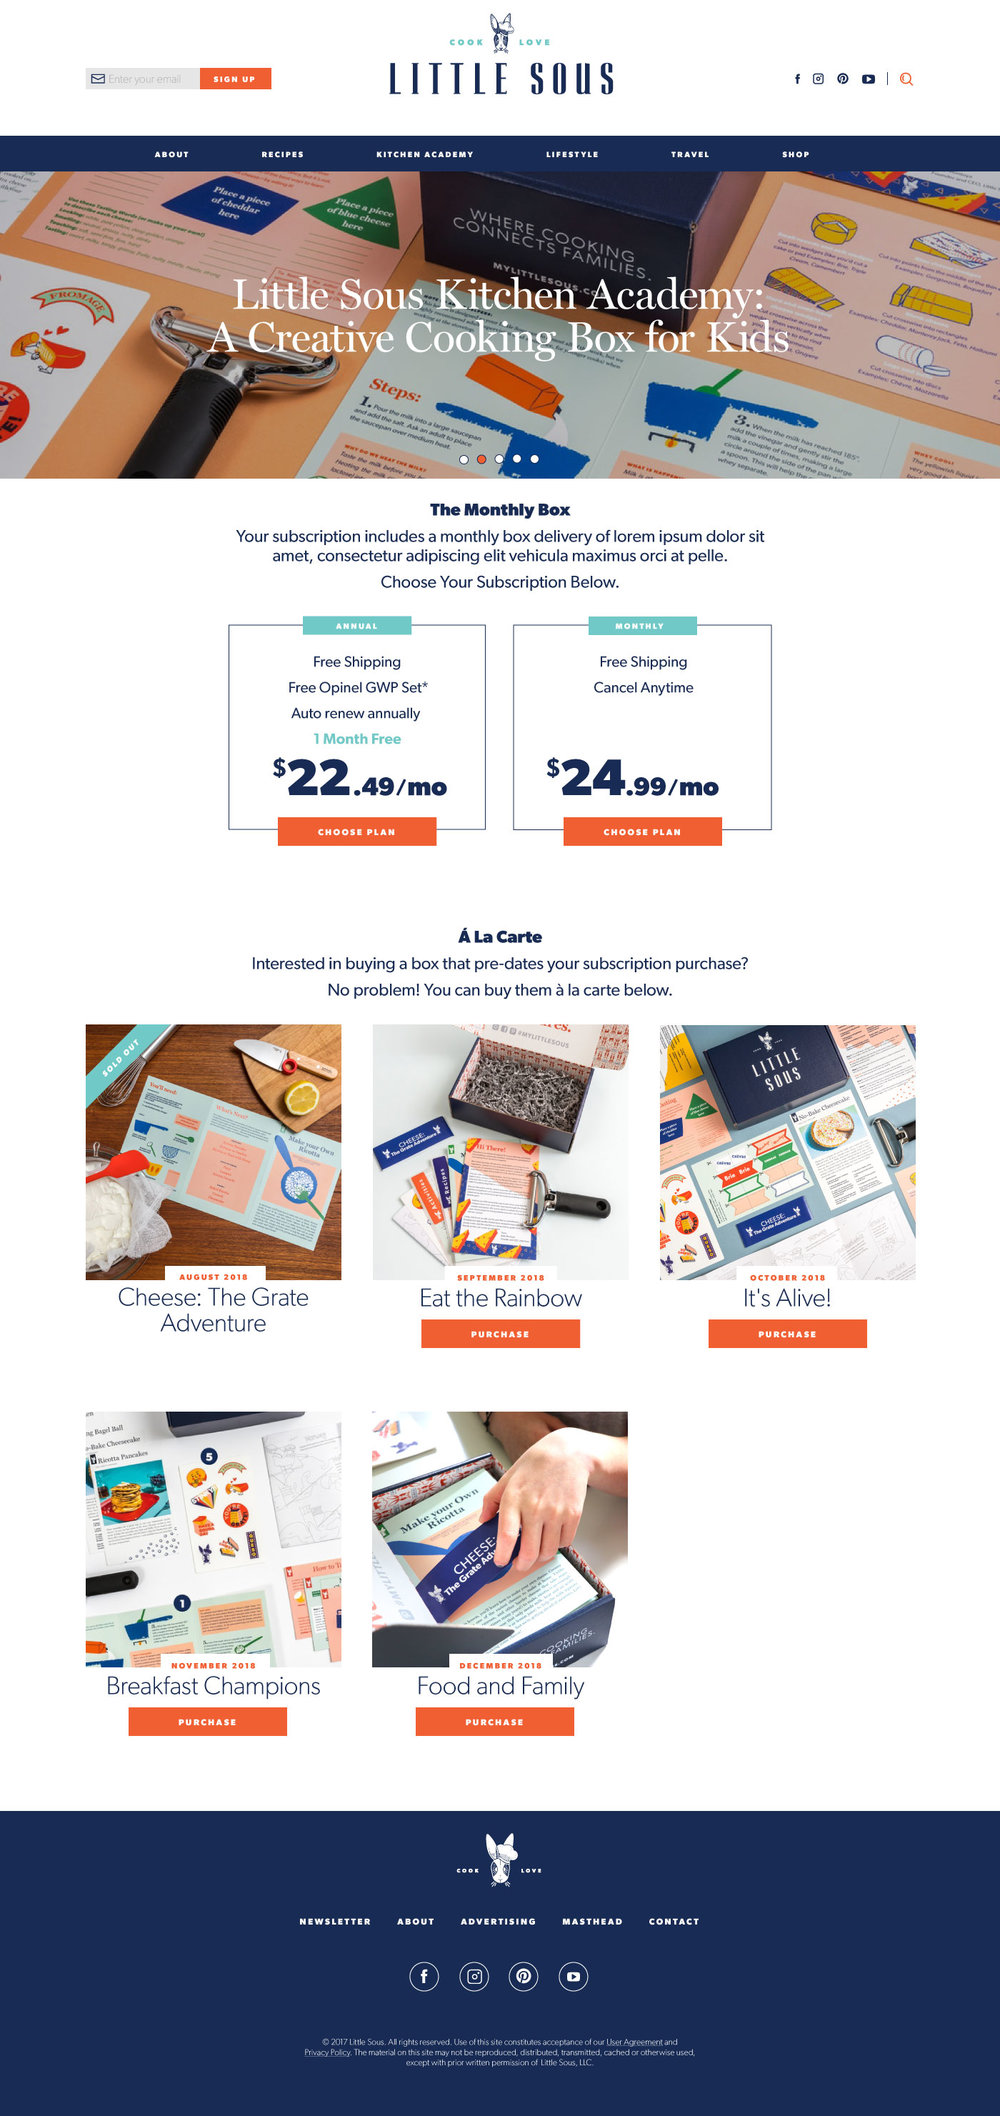 Subscription Boxes - About six months after the launch of Little Sous, they launched a subscription box service. I helped select the e-commerce platform and incorporated into the site.